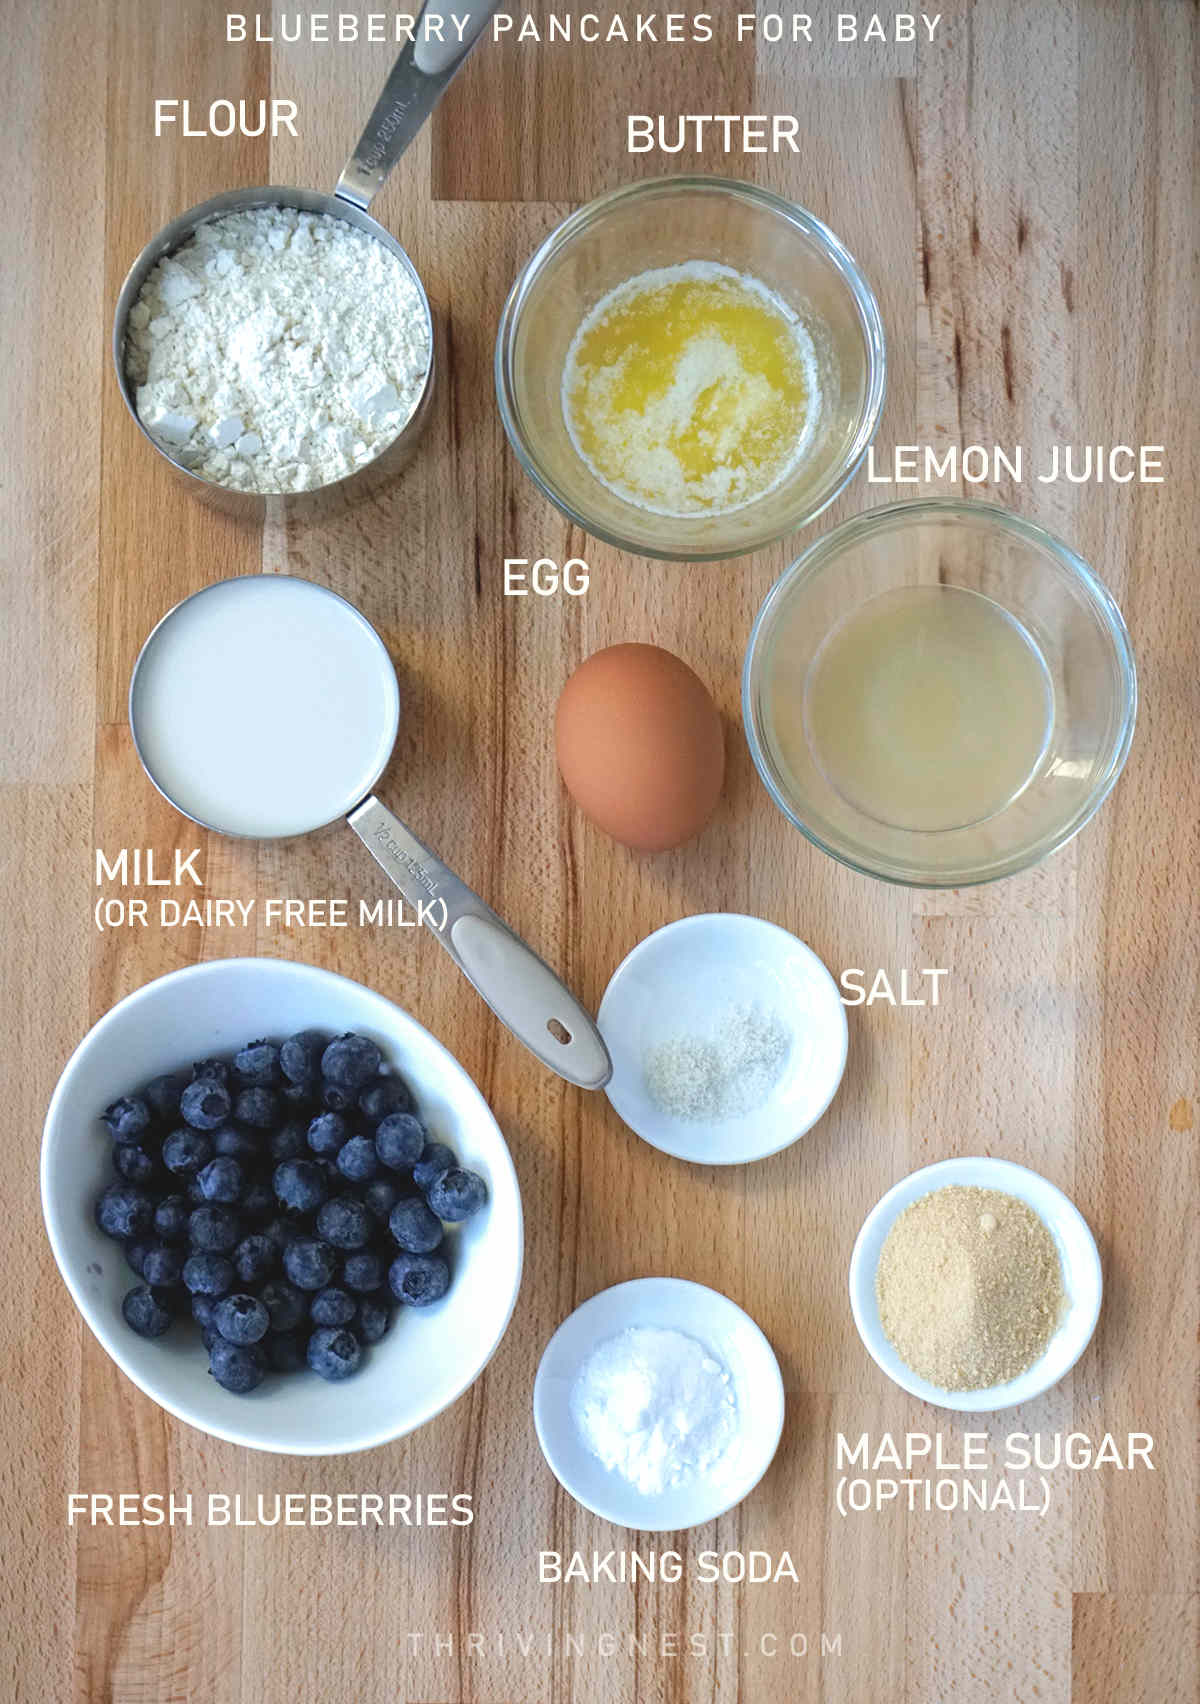 Ingredients needed for making blueberry pancakes for baby.